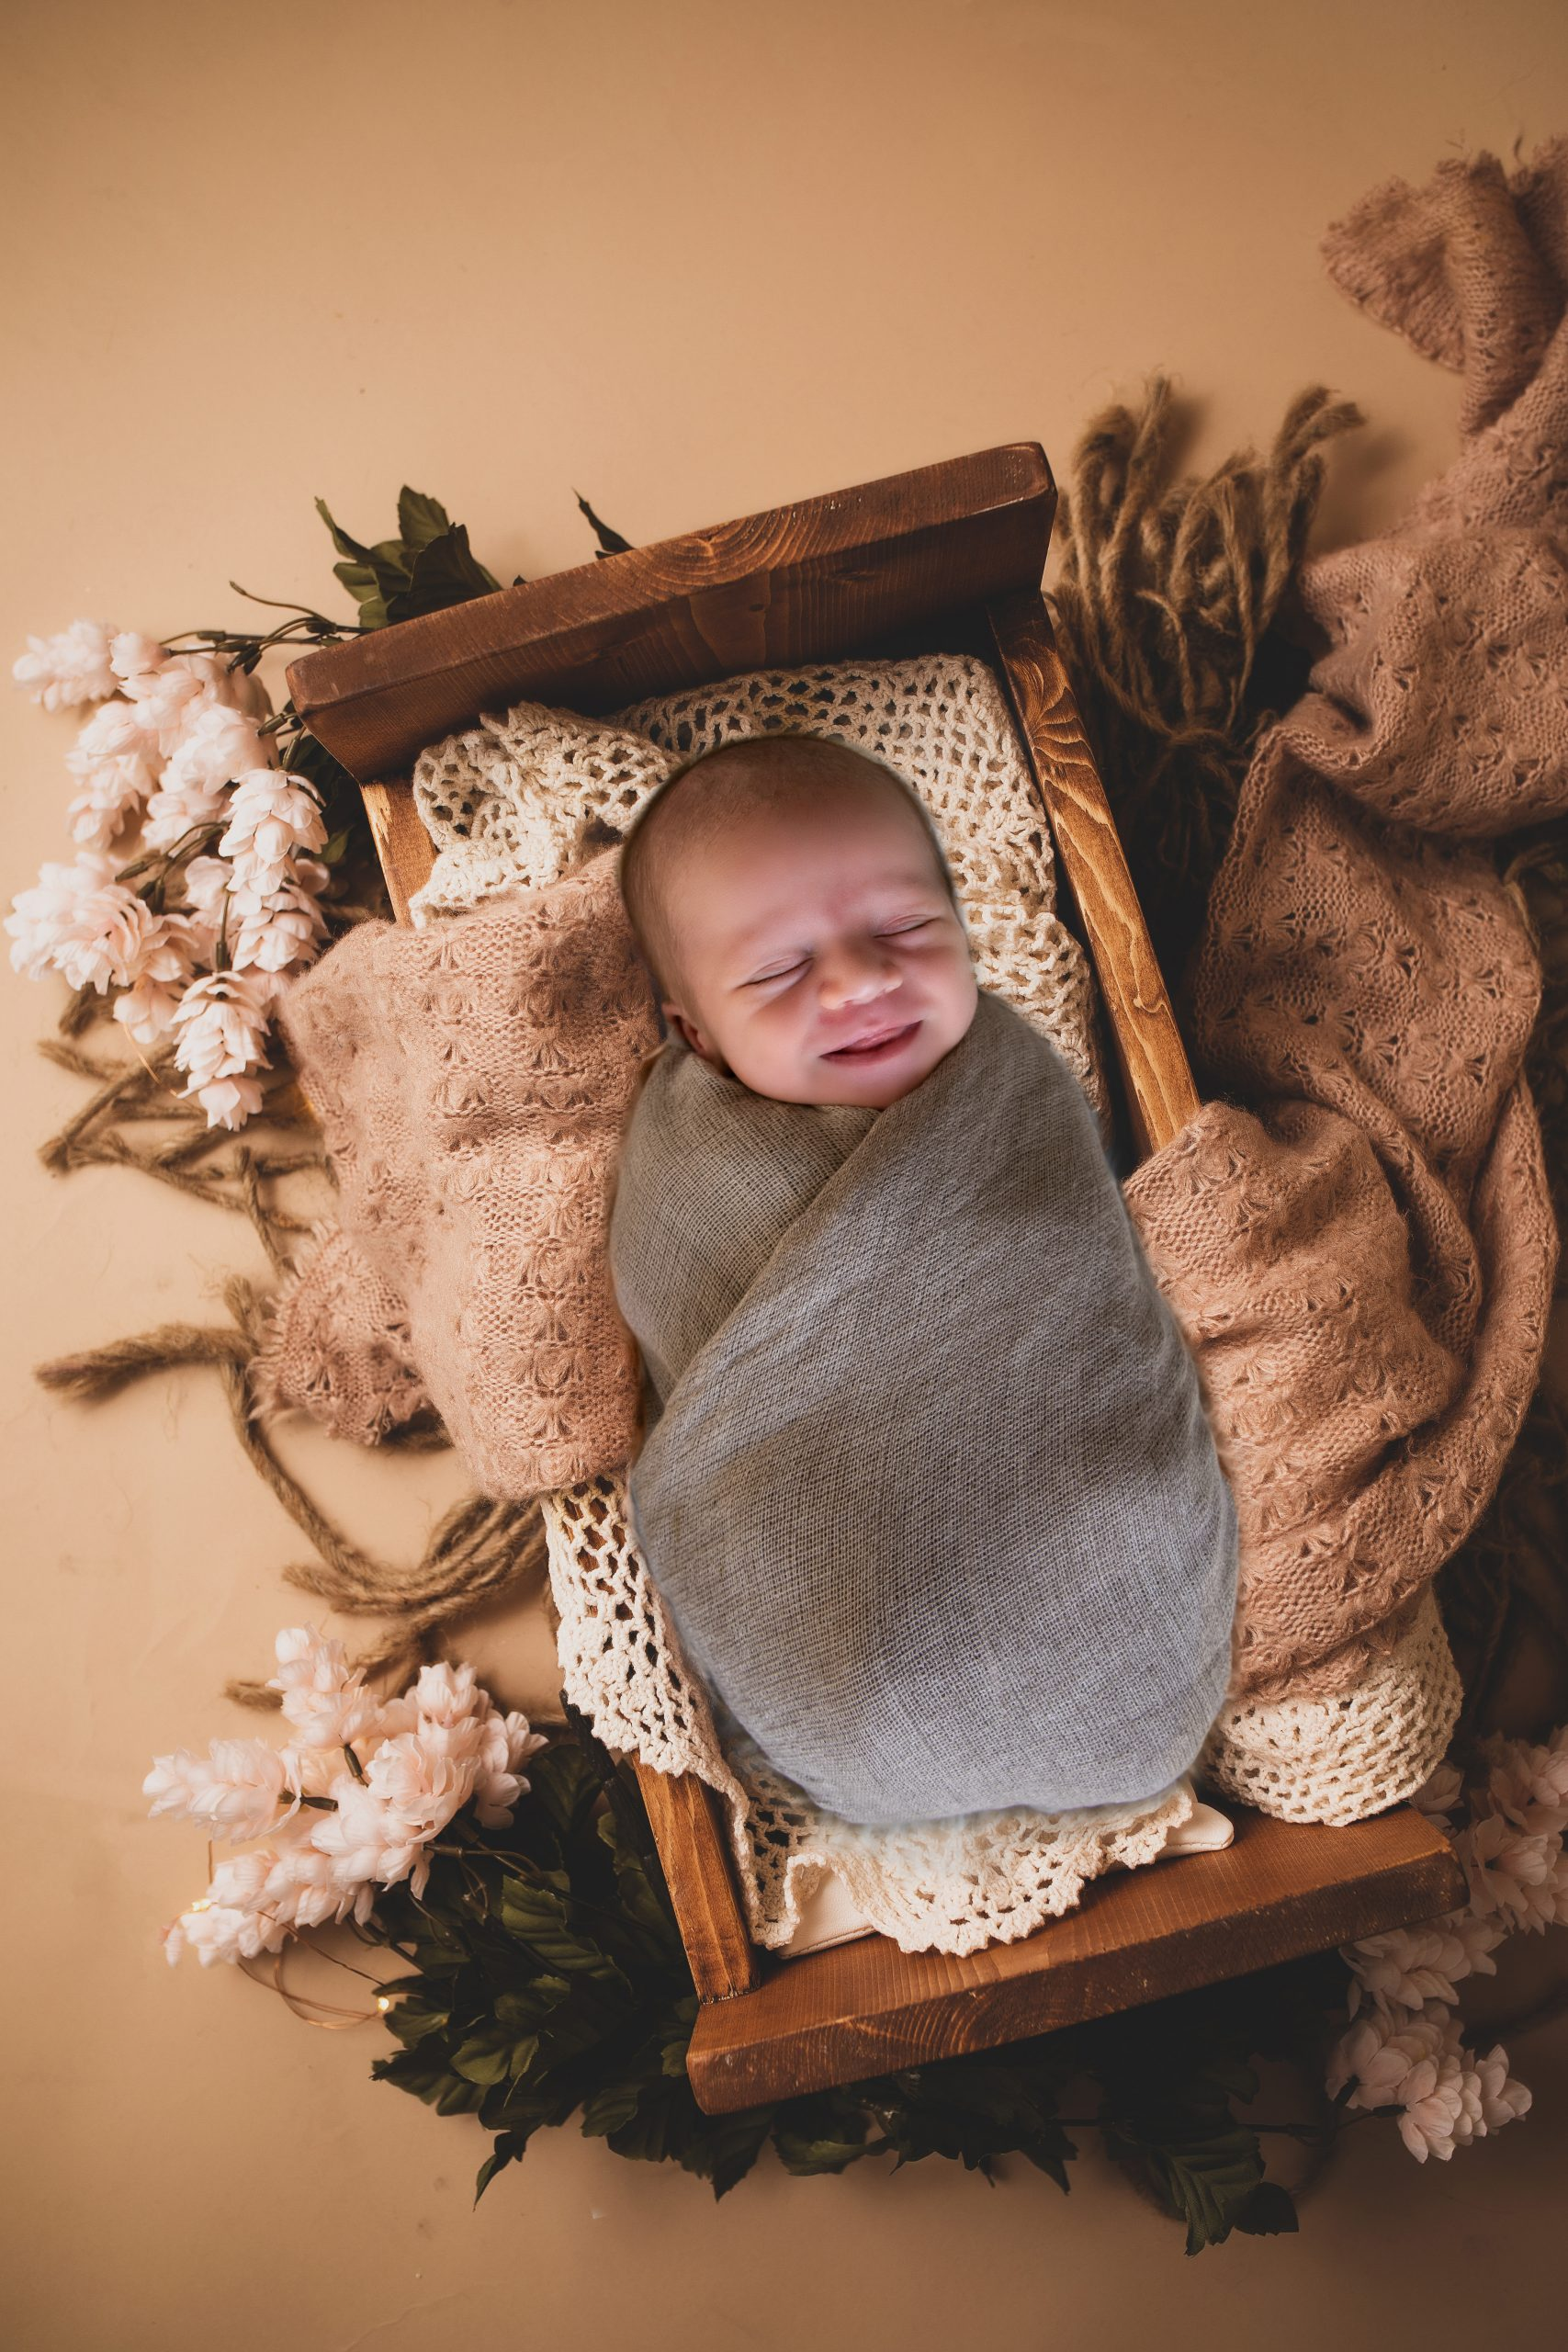 Cute baby in the bassinet